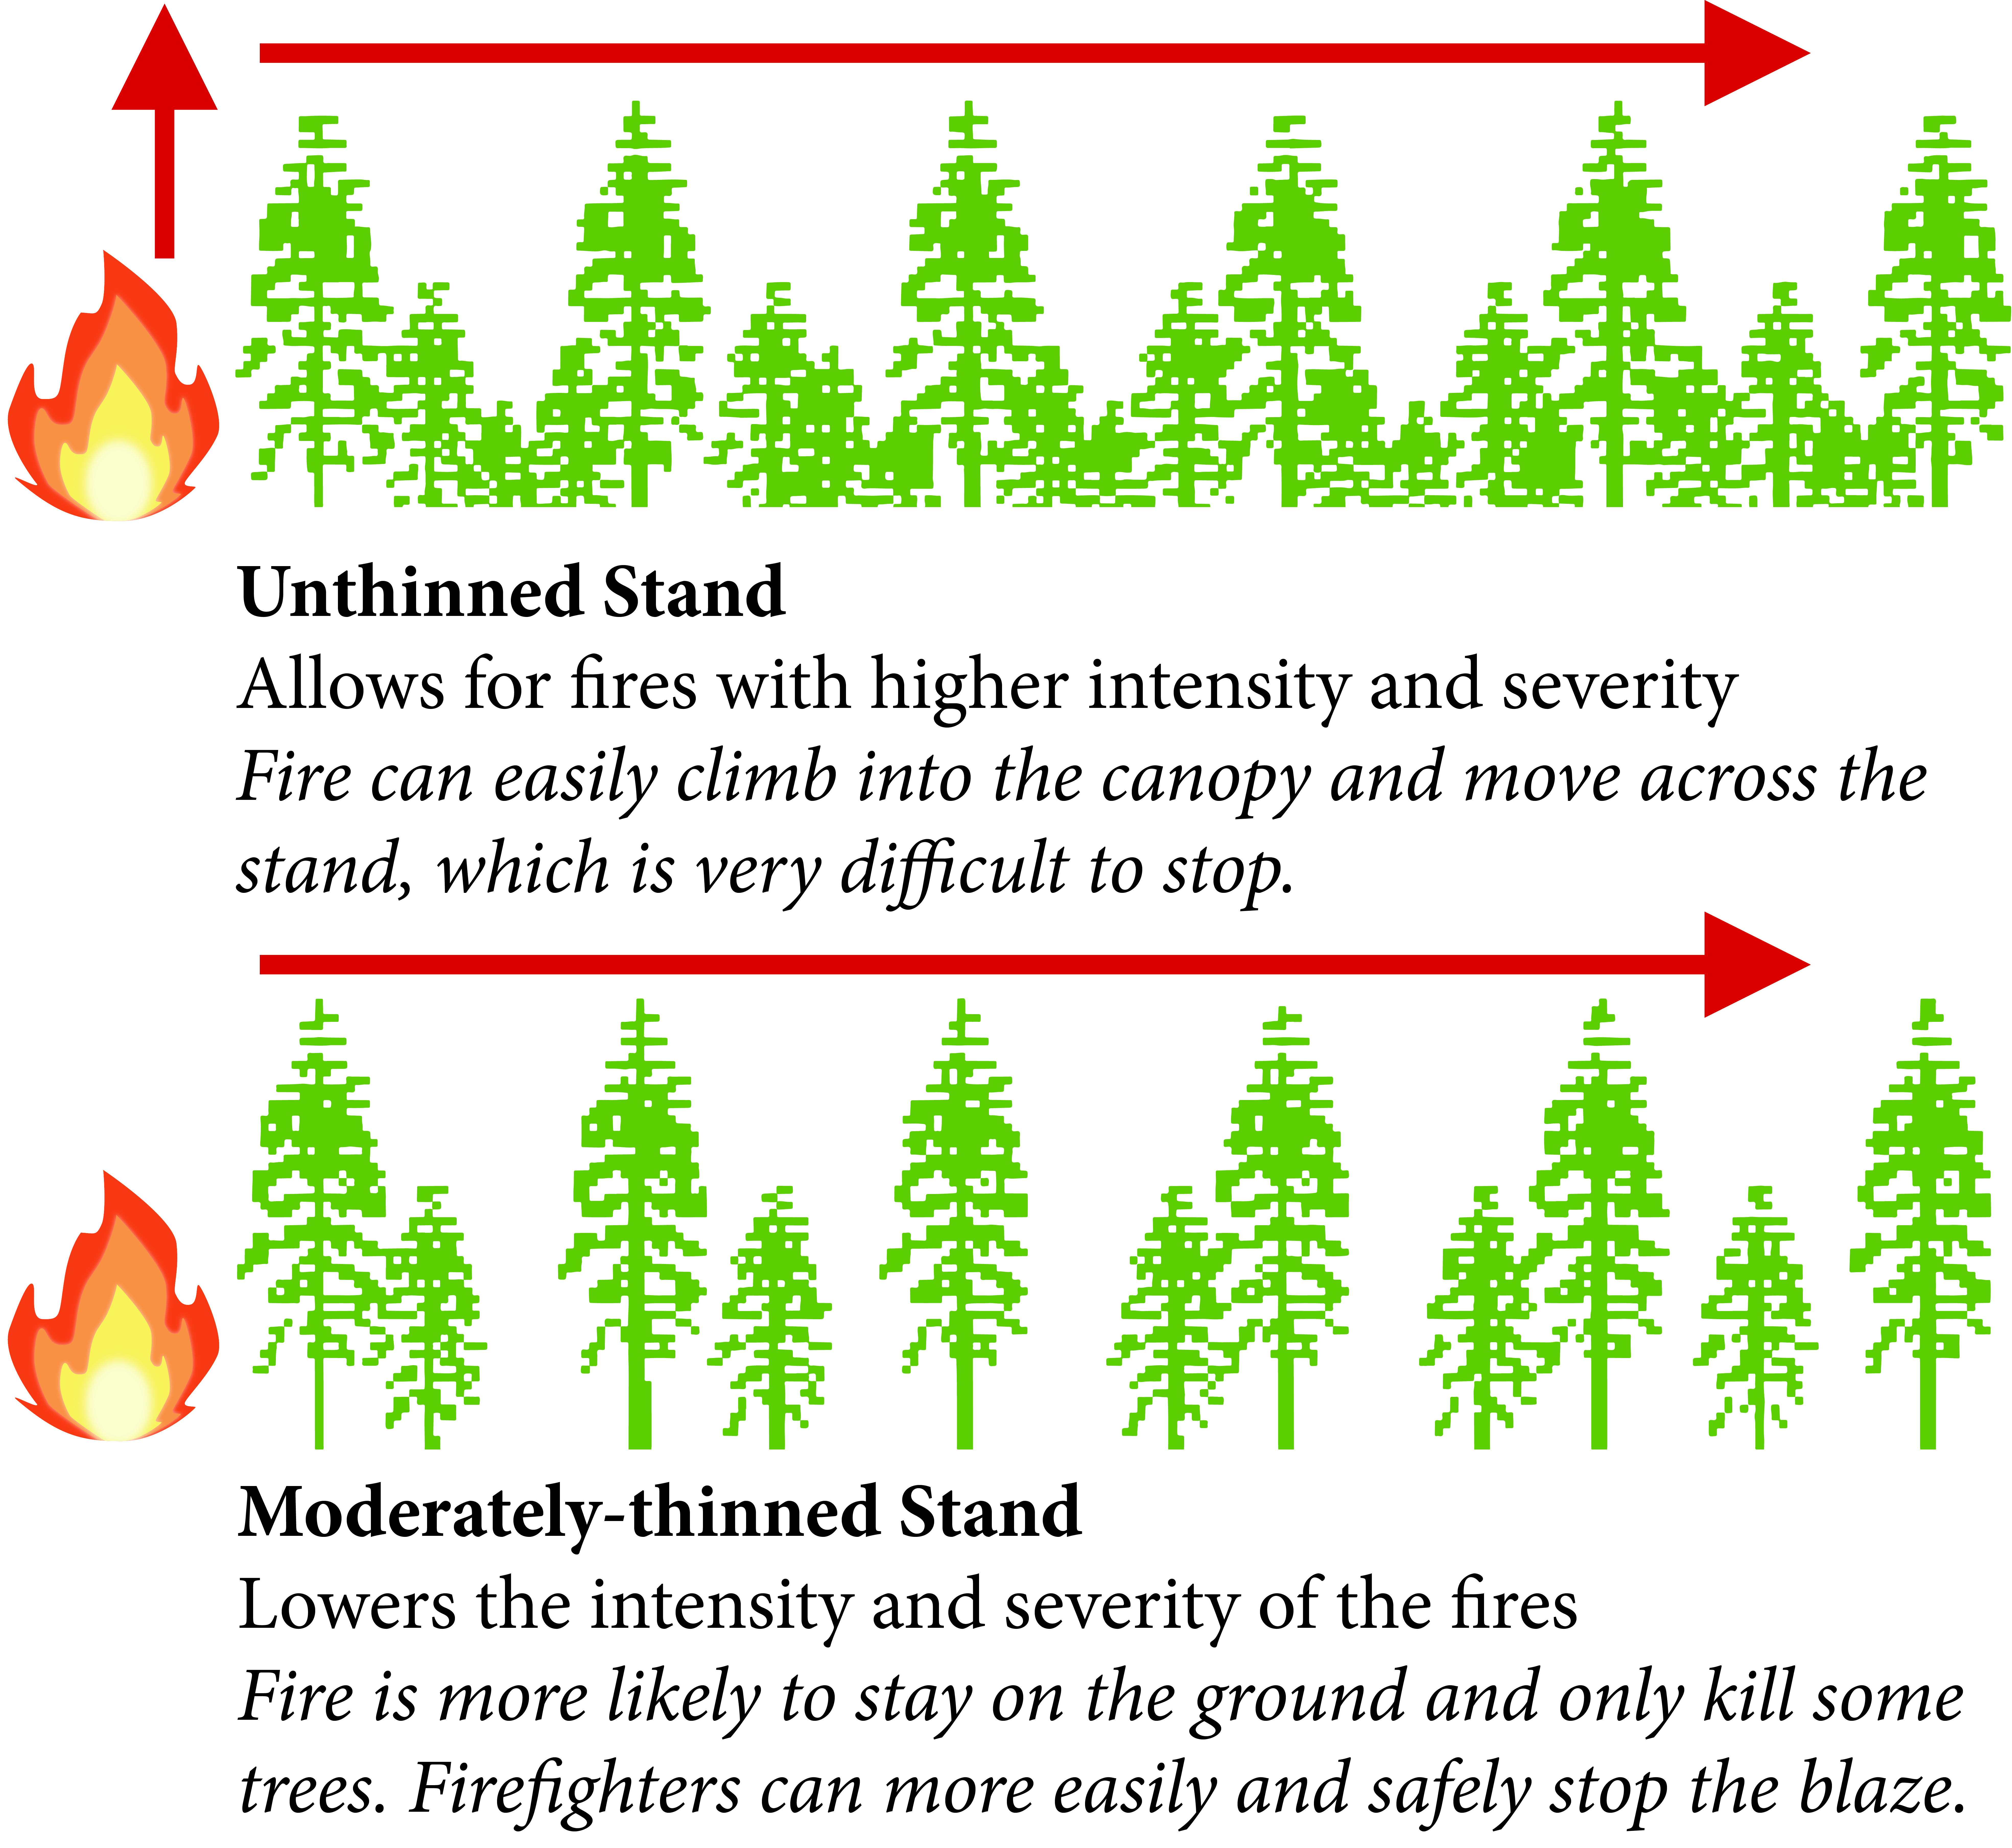 A graphic showing the benefits of forest thining